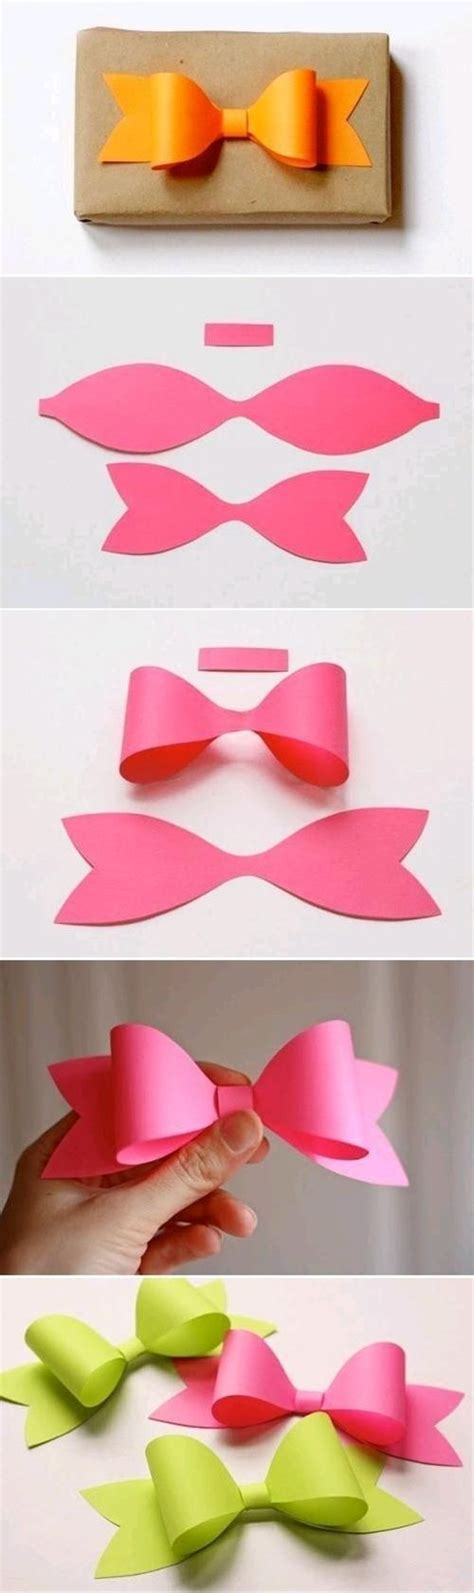 How To Make Bows Out Of Wrapping Paper - diy papierschleife f 252 r geschenke basteln paper bows